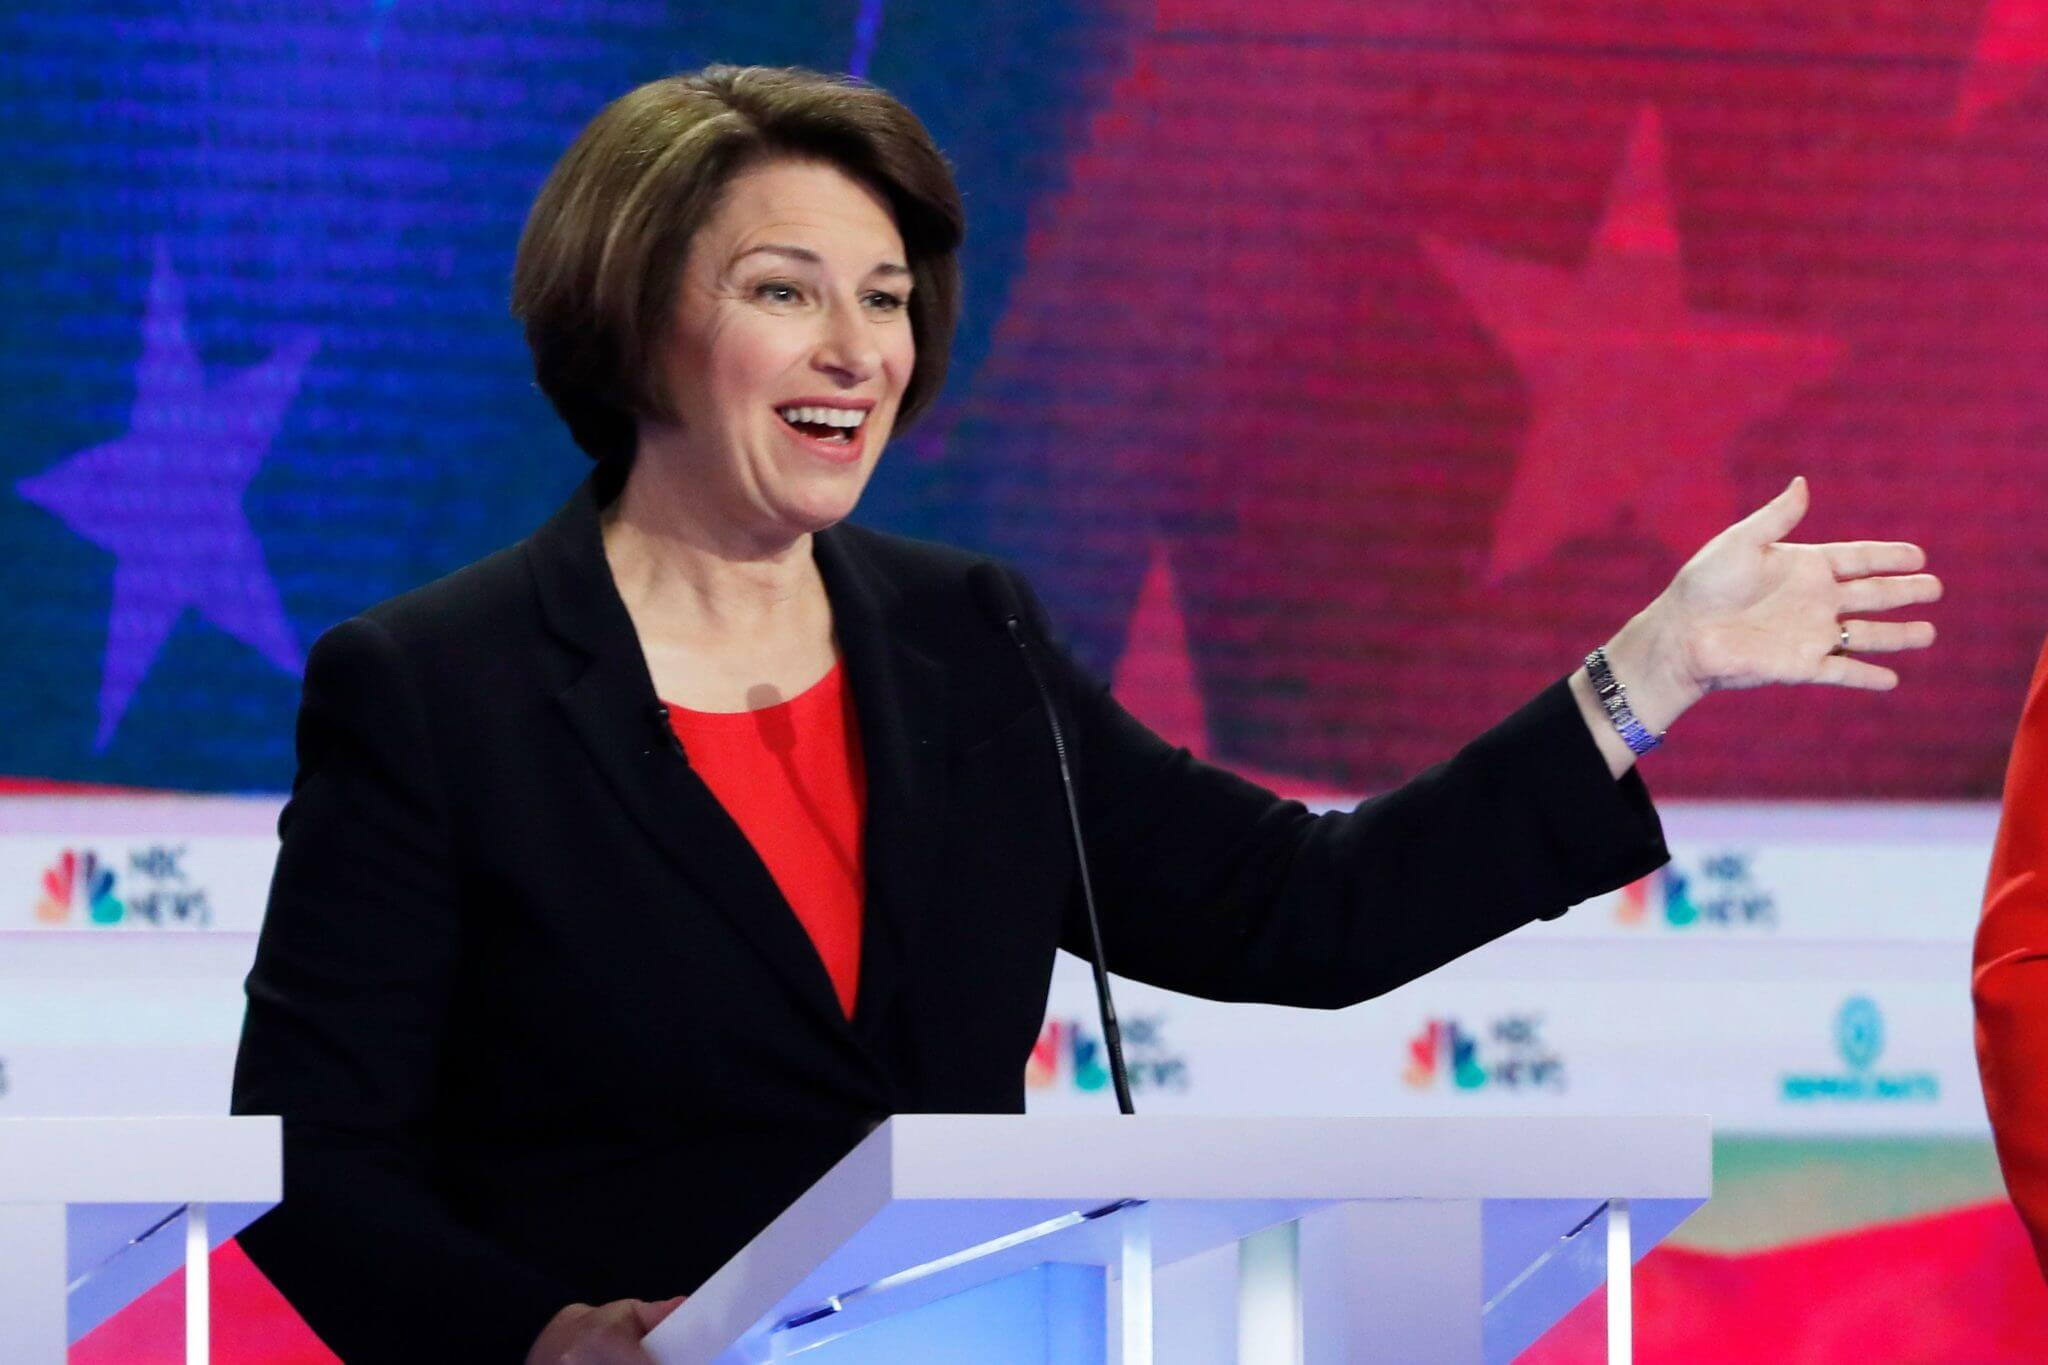 Amy Klobuchar at Dem debate, June 26, 2019. Joe Raedle/Getty Images